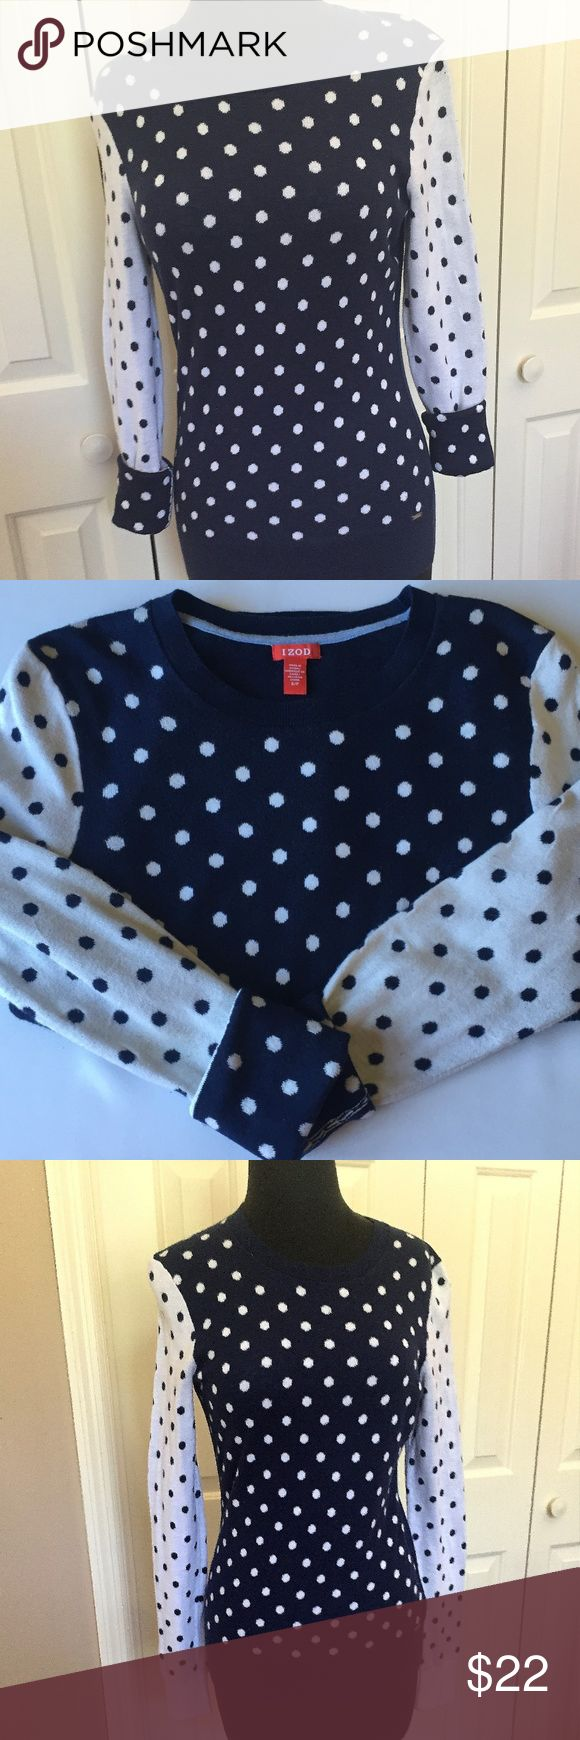 """IZOD Navy Blue & White Polka Dot Sweater-SMALL Precious ladies IZOD sweater that is Navy Blue and White Polka dots. This has a solid navy blue back, navy with white polka dots on front and white with navy polka dots on sleeves. This sweater is a size SMALL.   The sweater measures:  17"""" armpit to armpit  24"""" down center back  The sleeves measure 23.5"""" sleeve measure (from top of shoulder seam to lower edge)   It has the metal IZOD label stitched on the front. This sweater has no rips, stains…"""